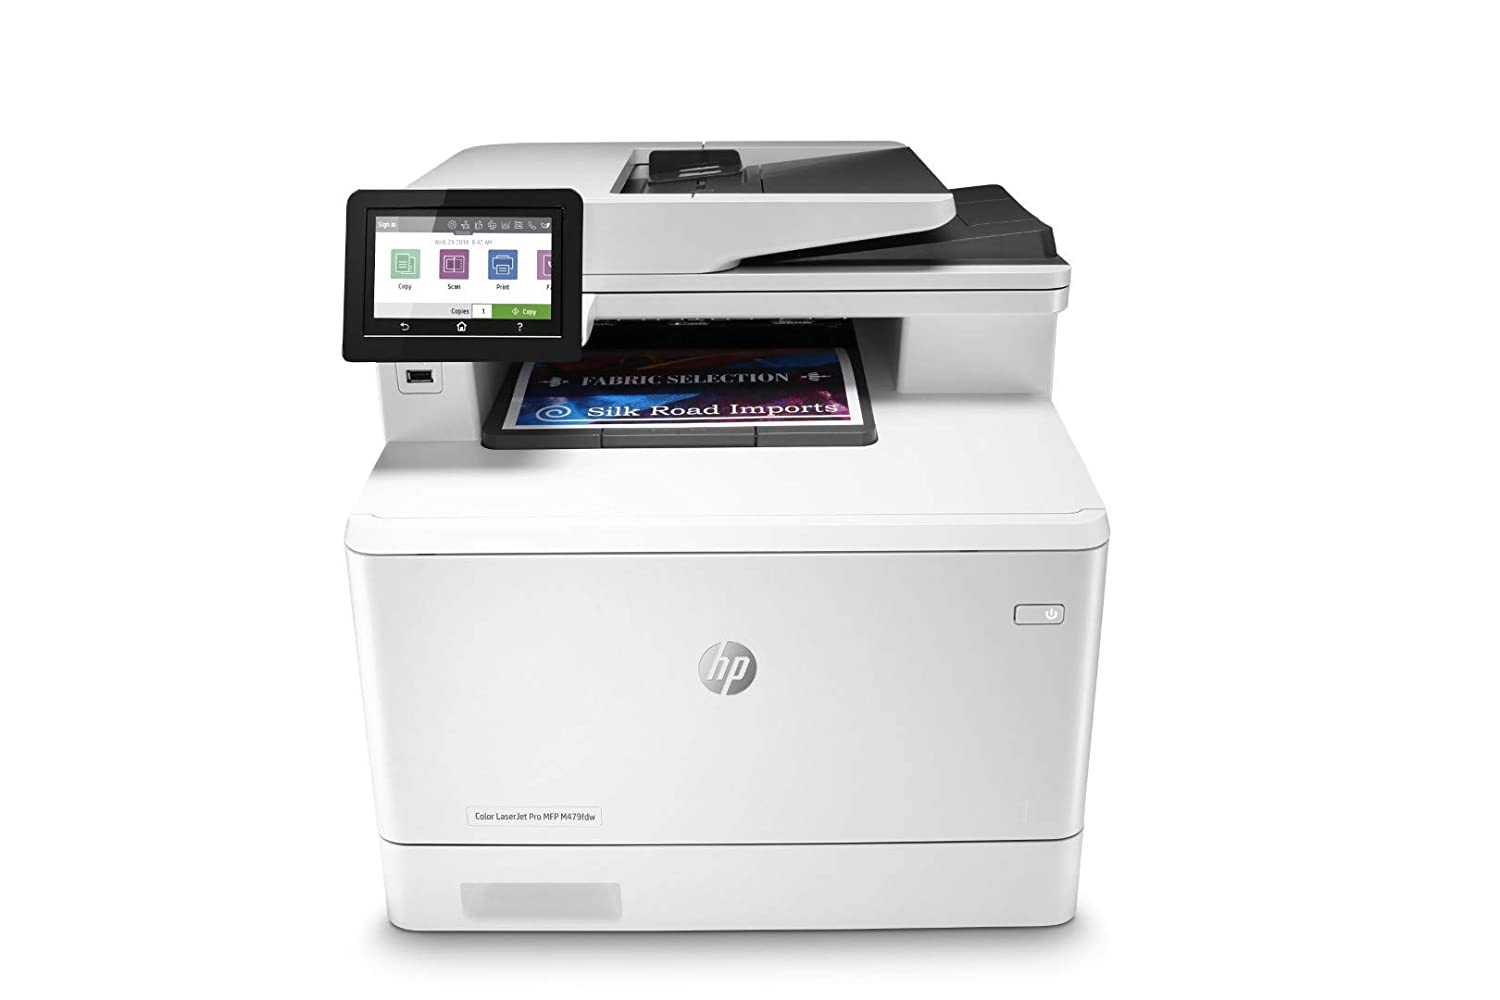 HP Color LaserJet Pro Multifunction M479fdw Wireless Laser Printer with One-Year W1A80A Onsite Warranty Renewed Next-Business Day